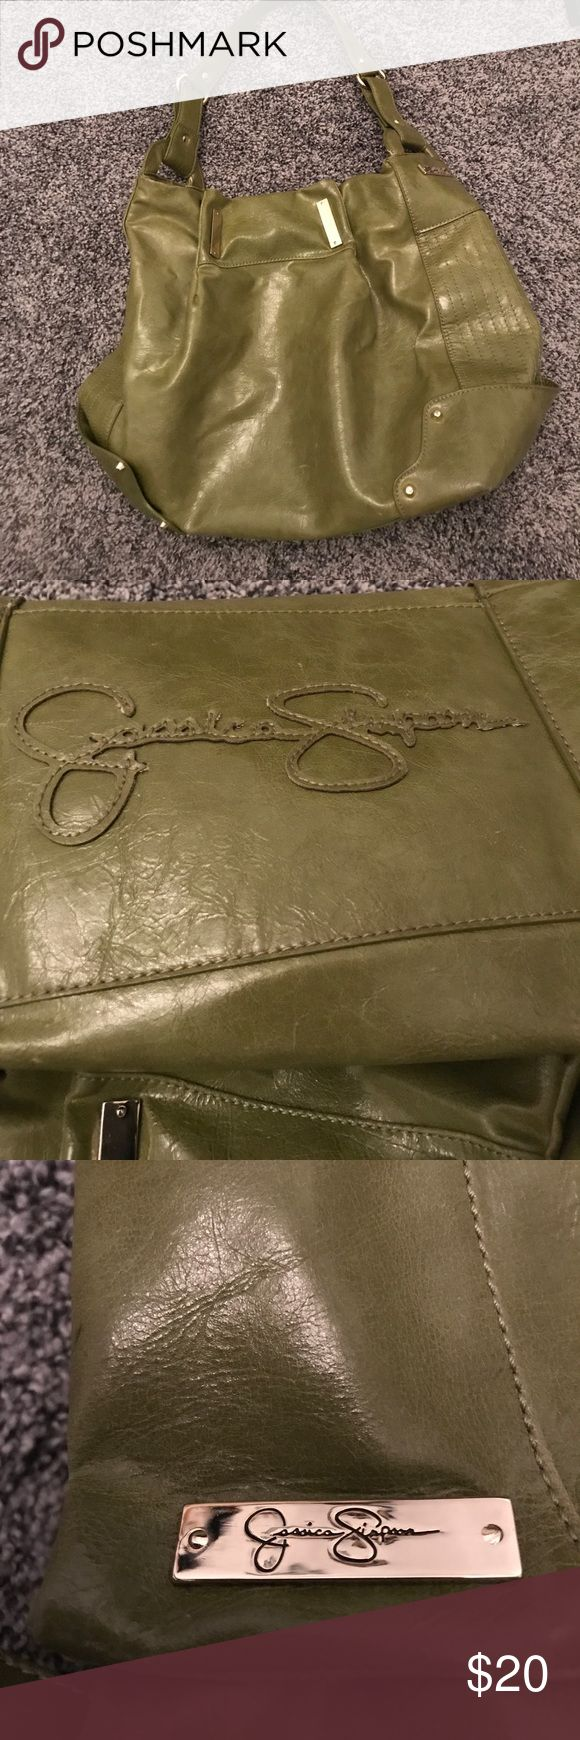 Green Jessica Simpson purse w/ silver hardware Super cute green shoulder bag purse by Jessica Simpson. Silver hardware and studs. Excellent condition. Jessica Simpson Bags Shoulder Bags